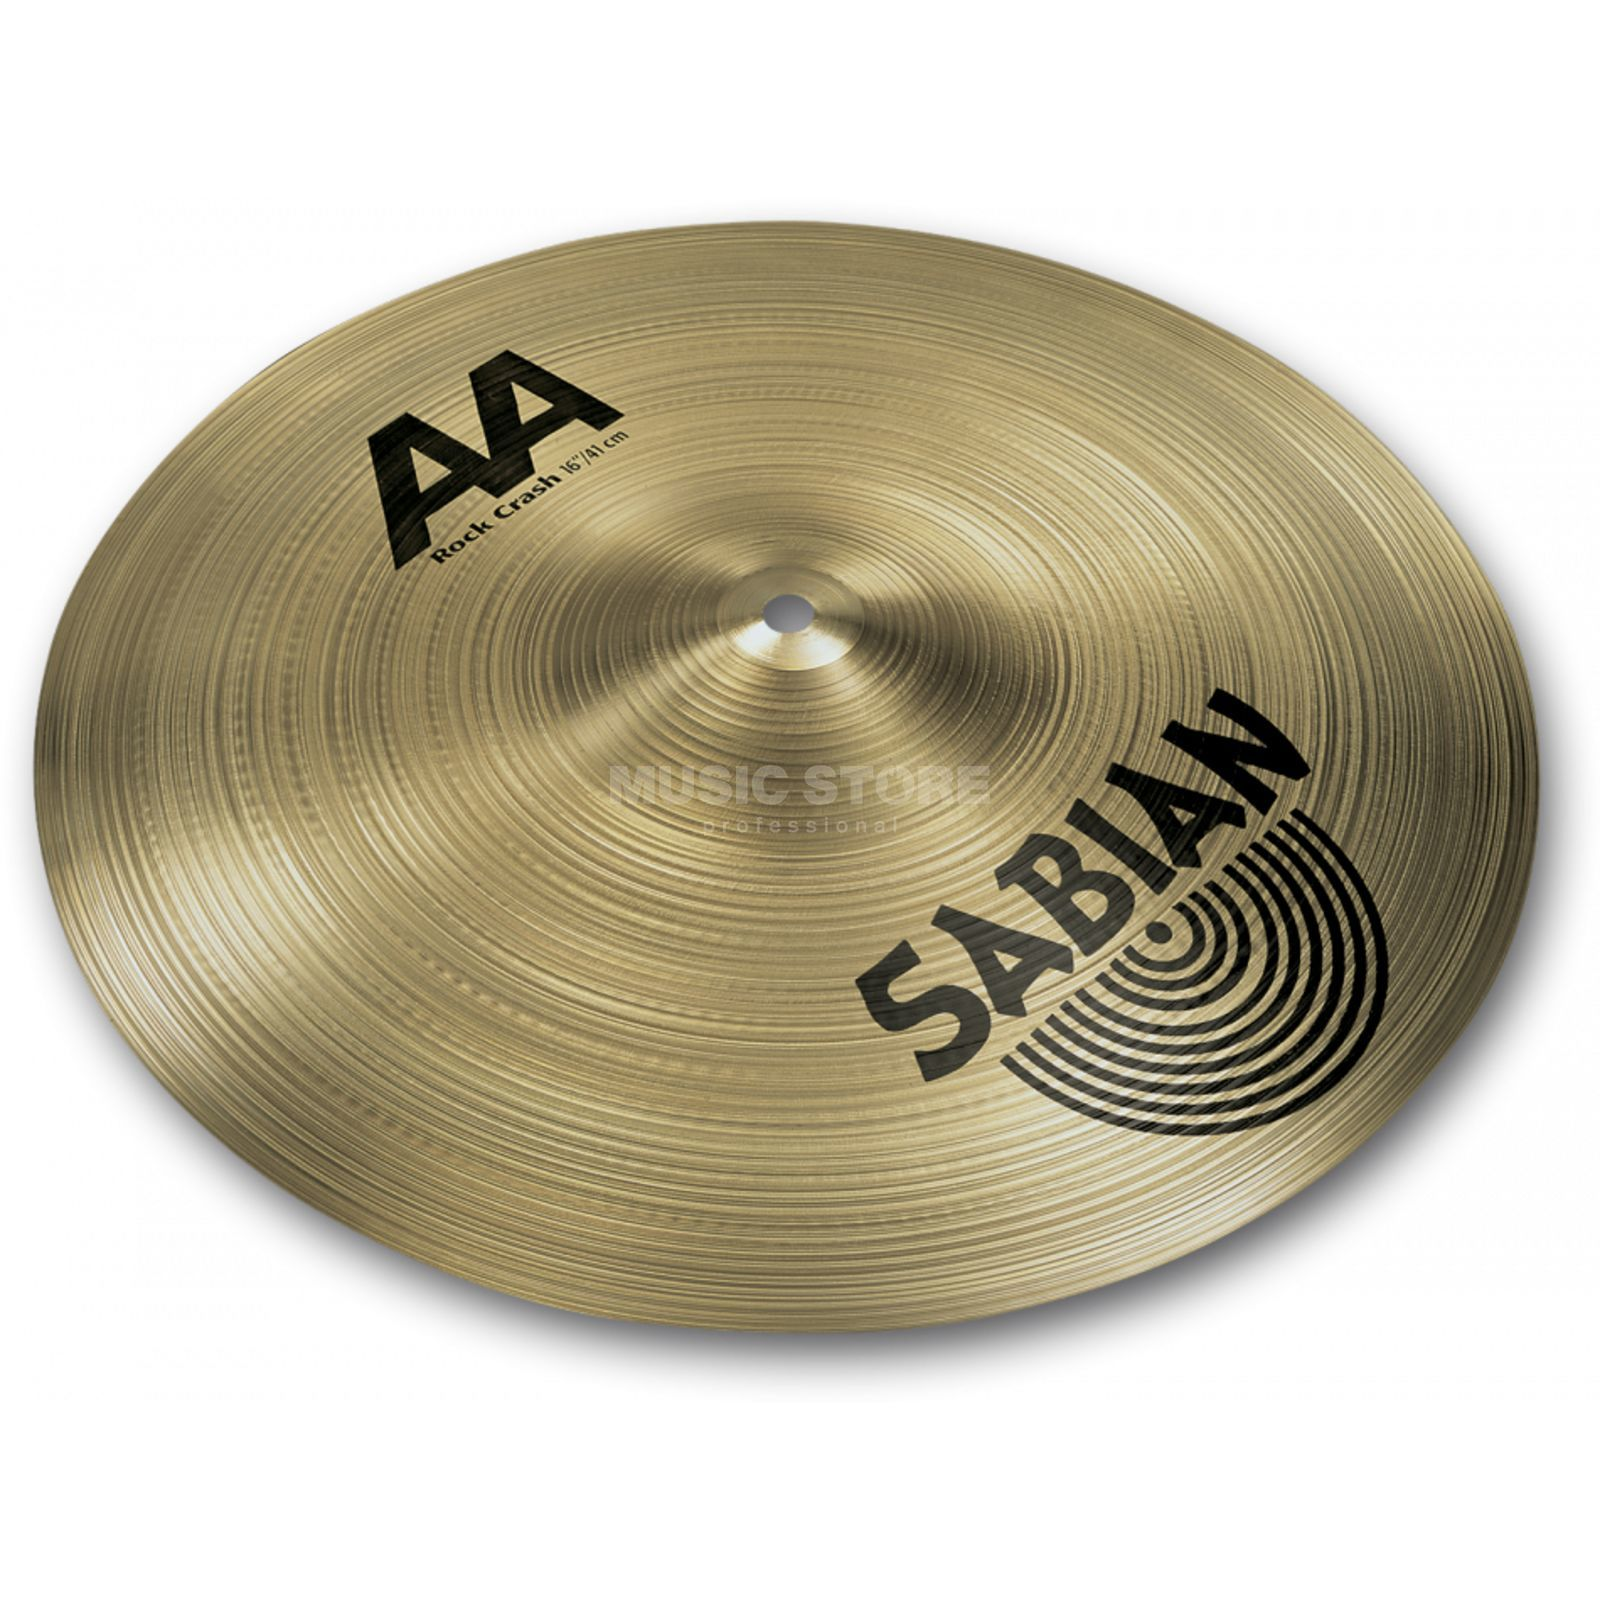 "Sabian AA Rock Crash 16"", Brilliant Finish Produktbild"